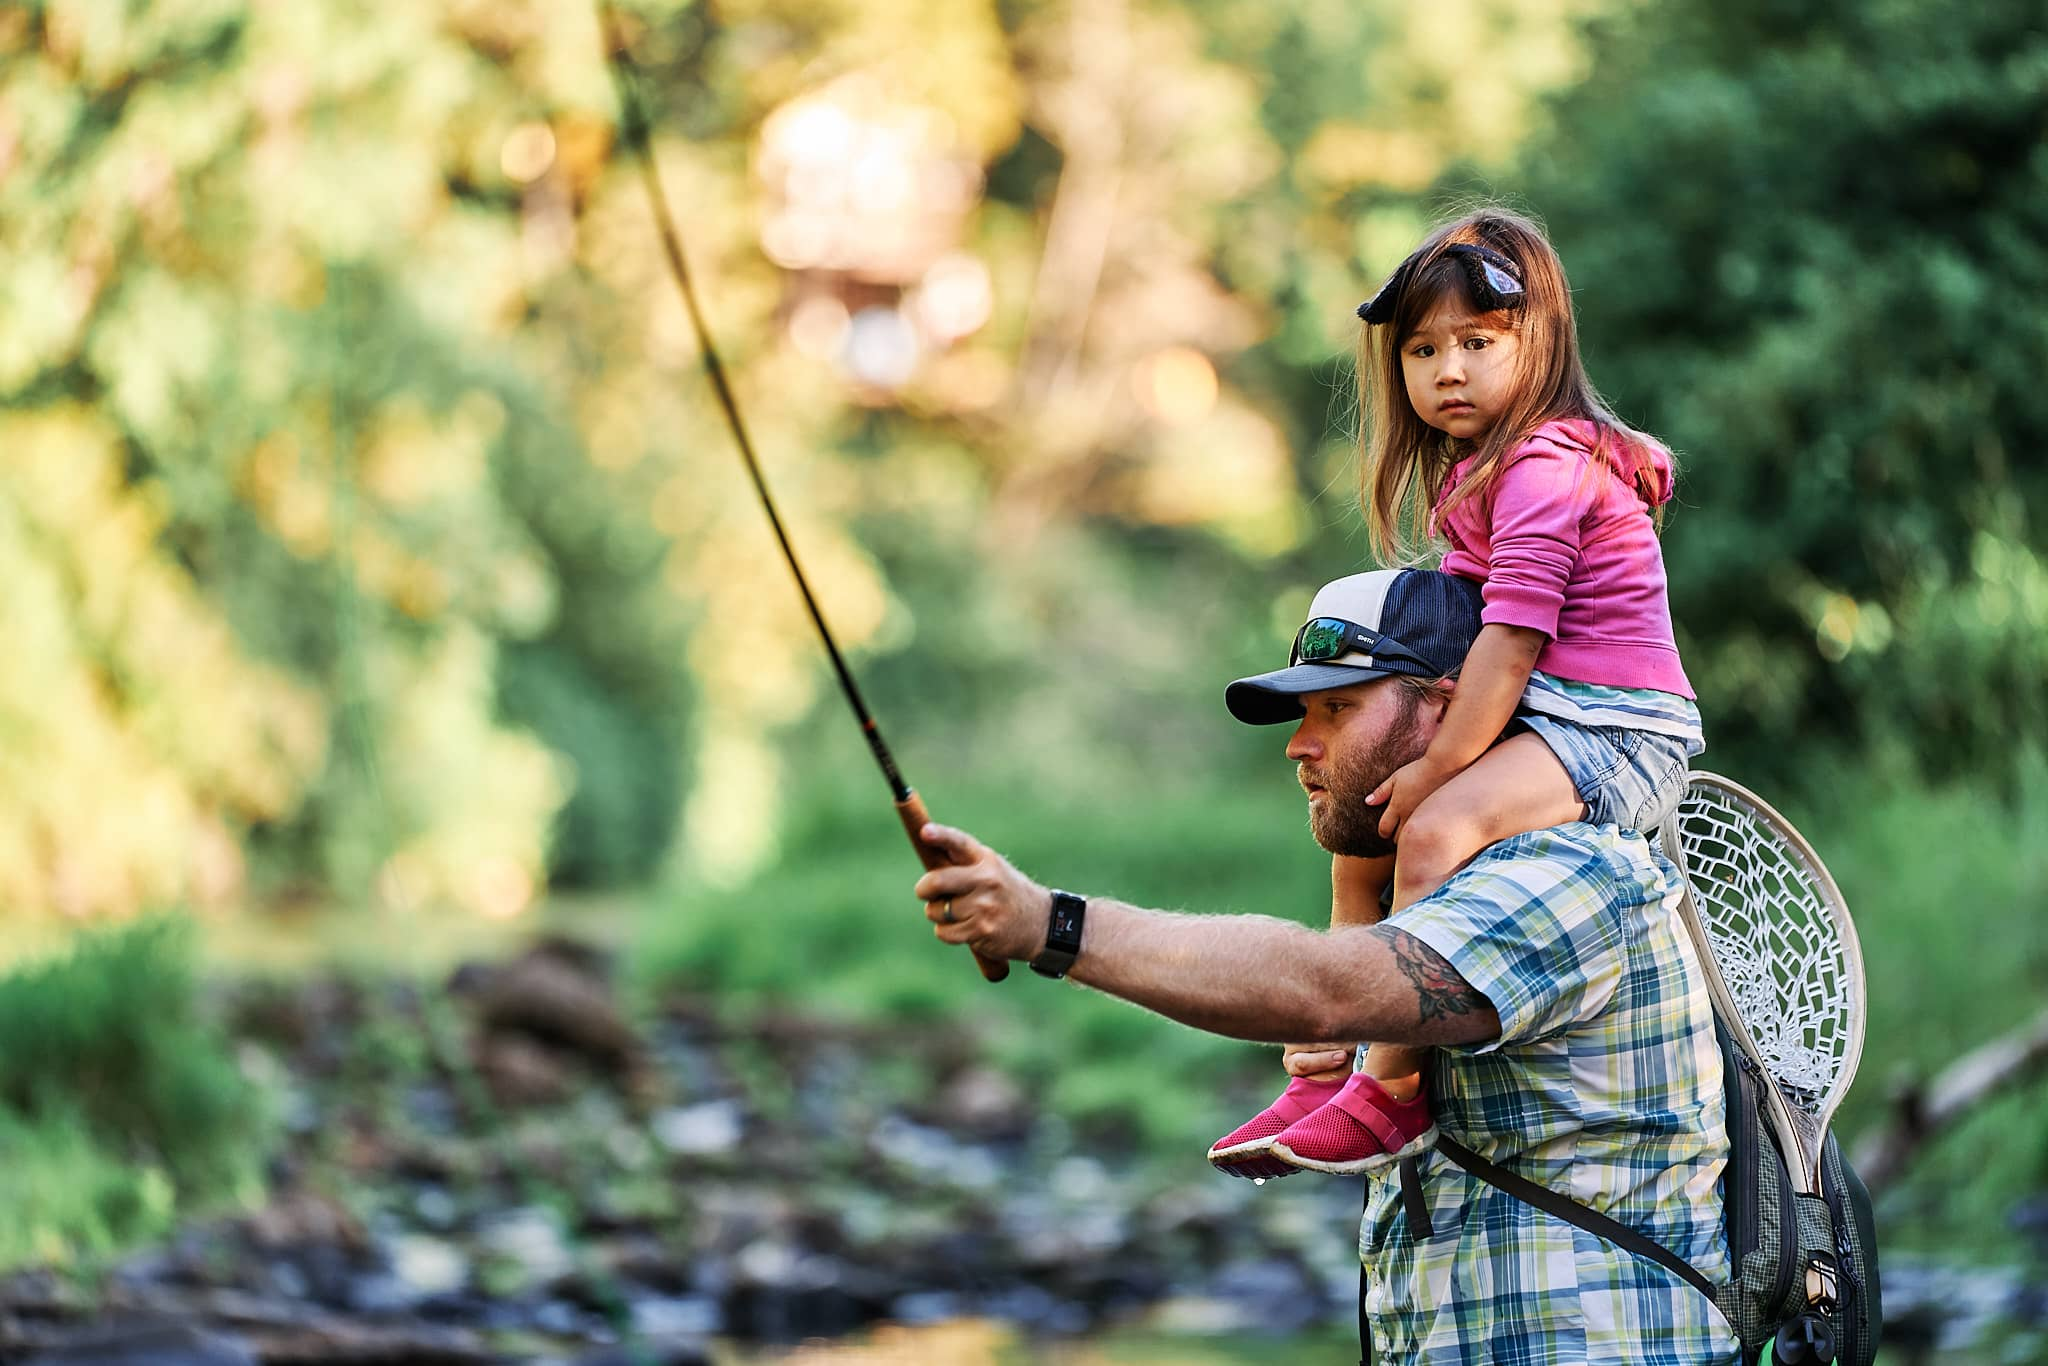 Man casting a fishing rod while his daughter sits on his shoulders